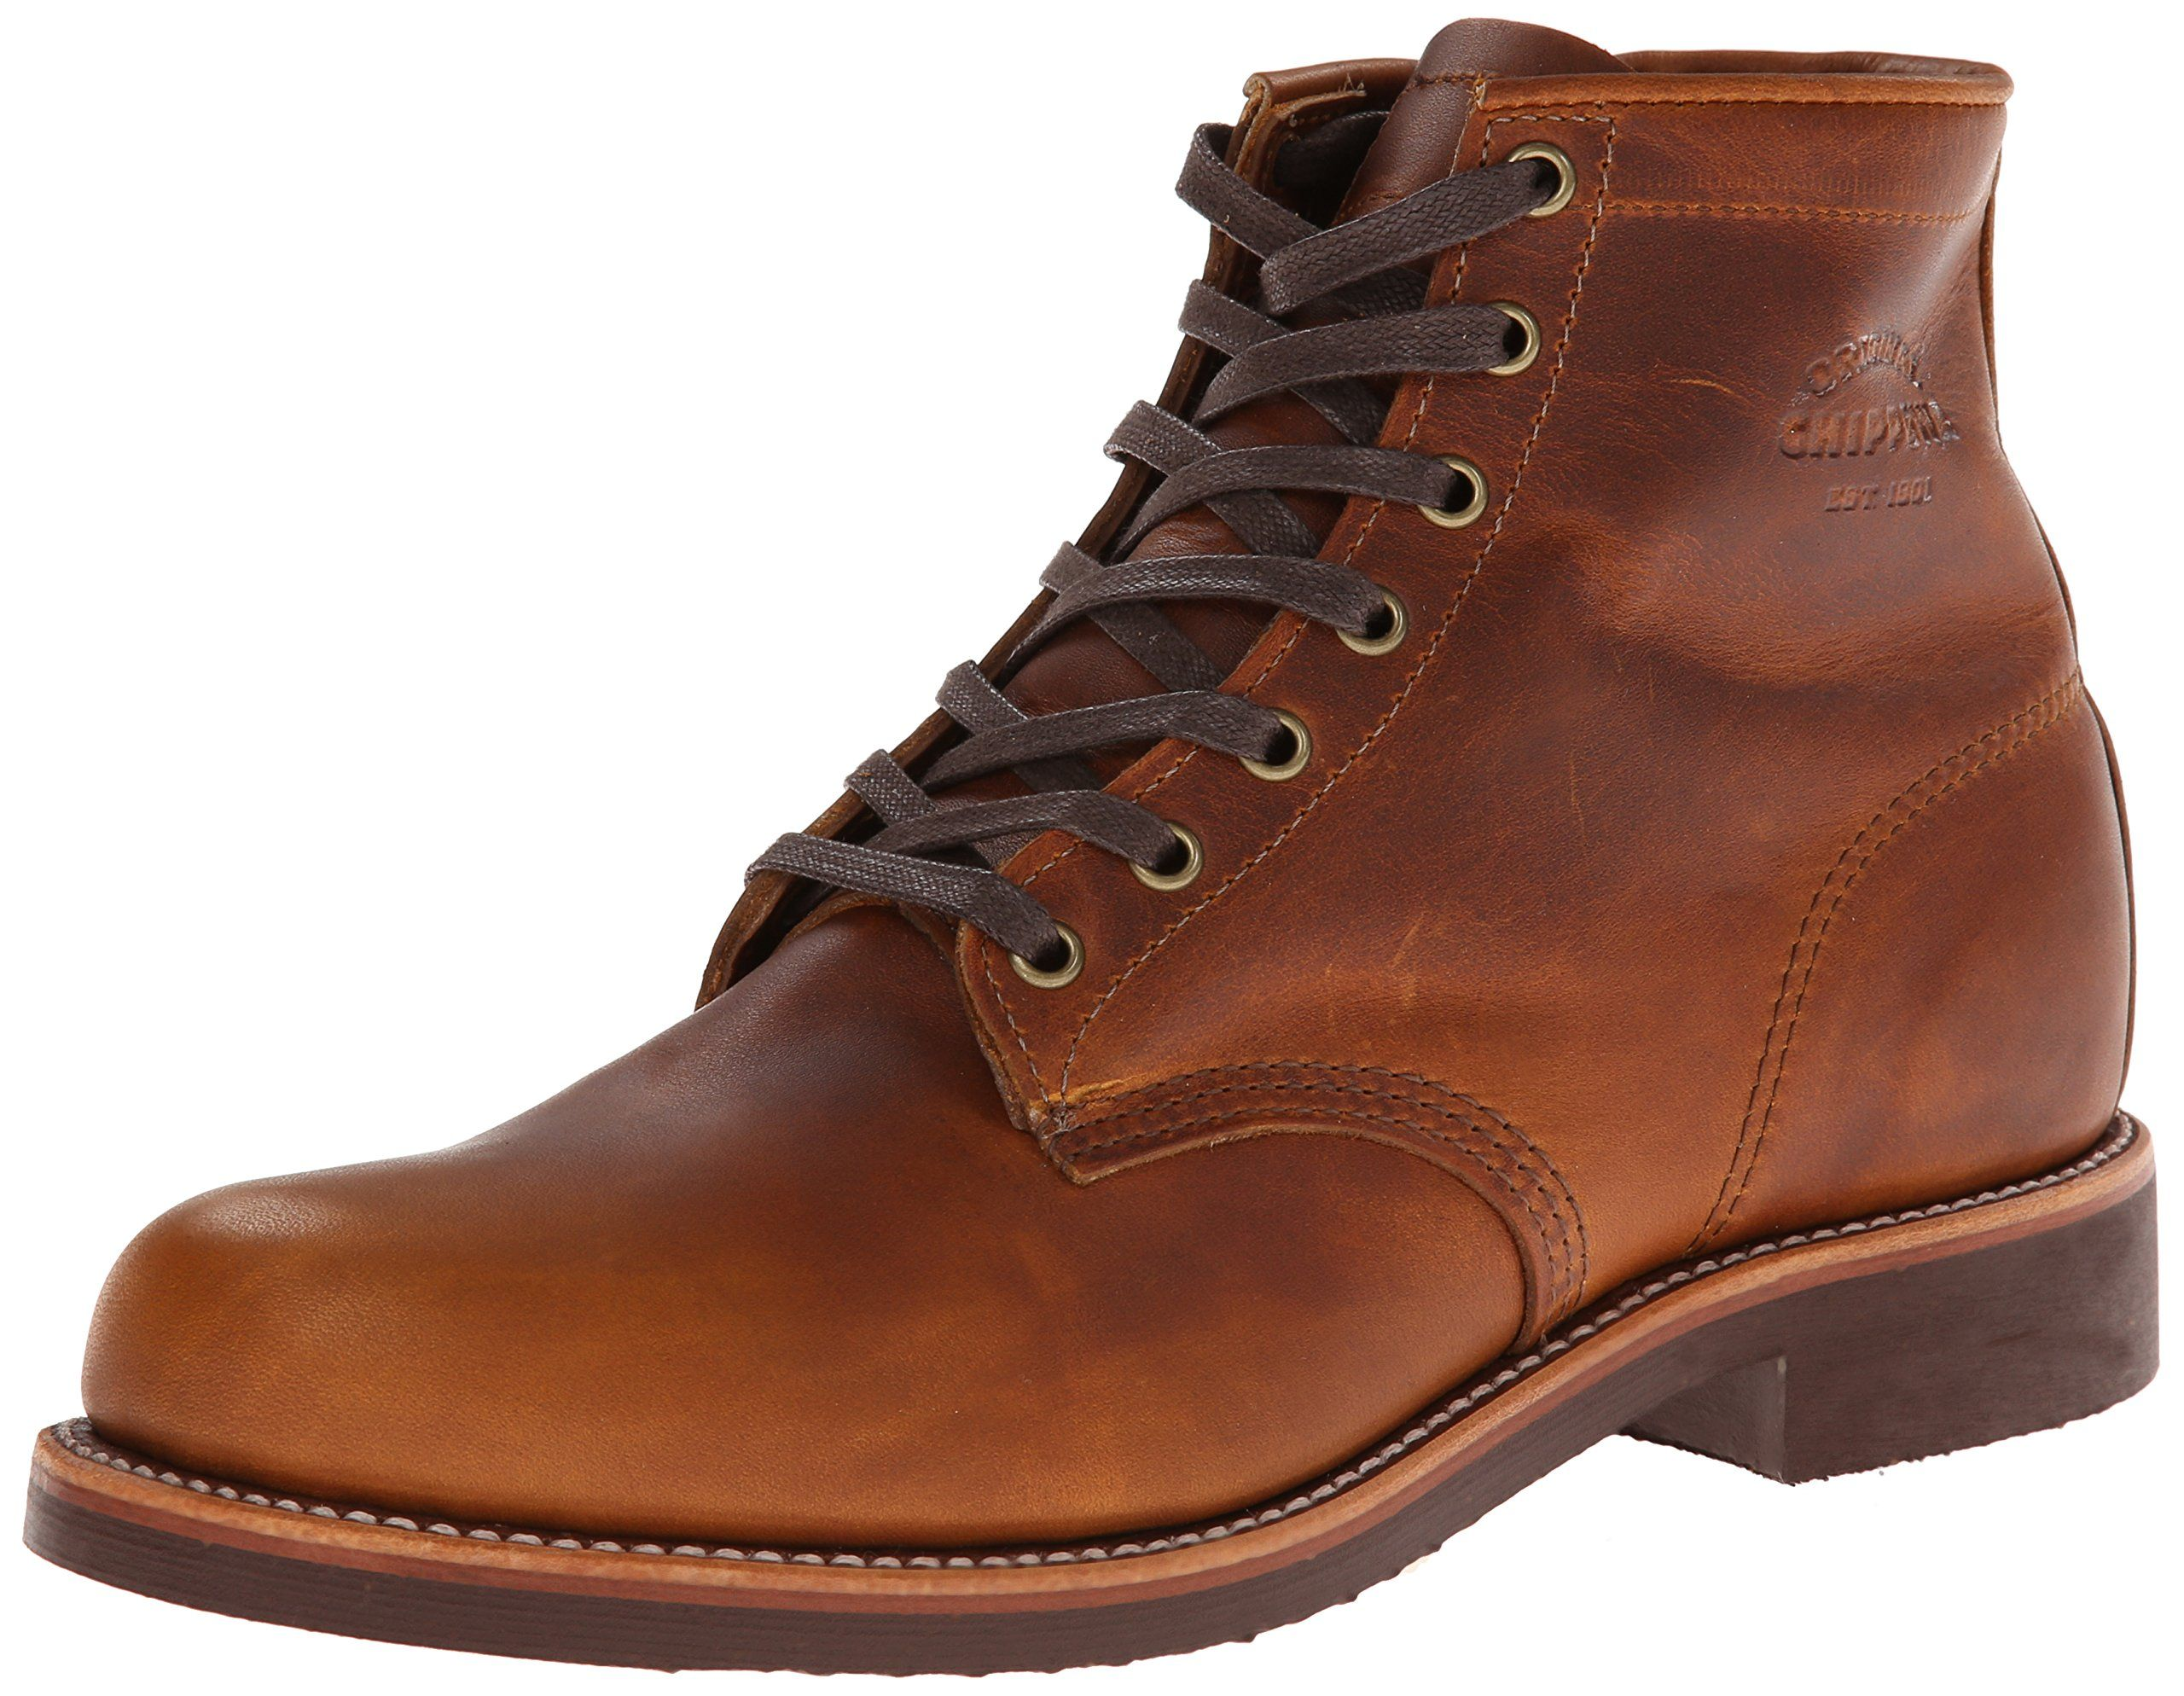 Original Chippewa Collection Men's 6 Inch Service Utility Boot, Tan Renegade